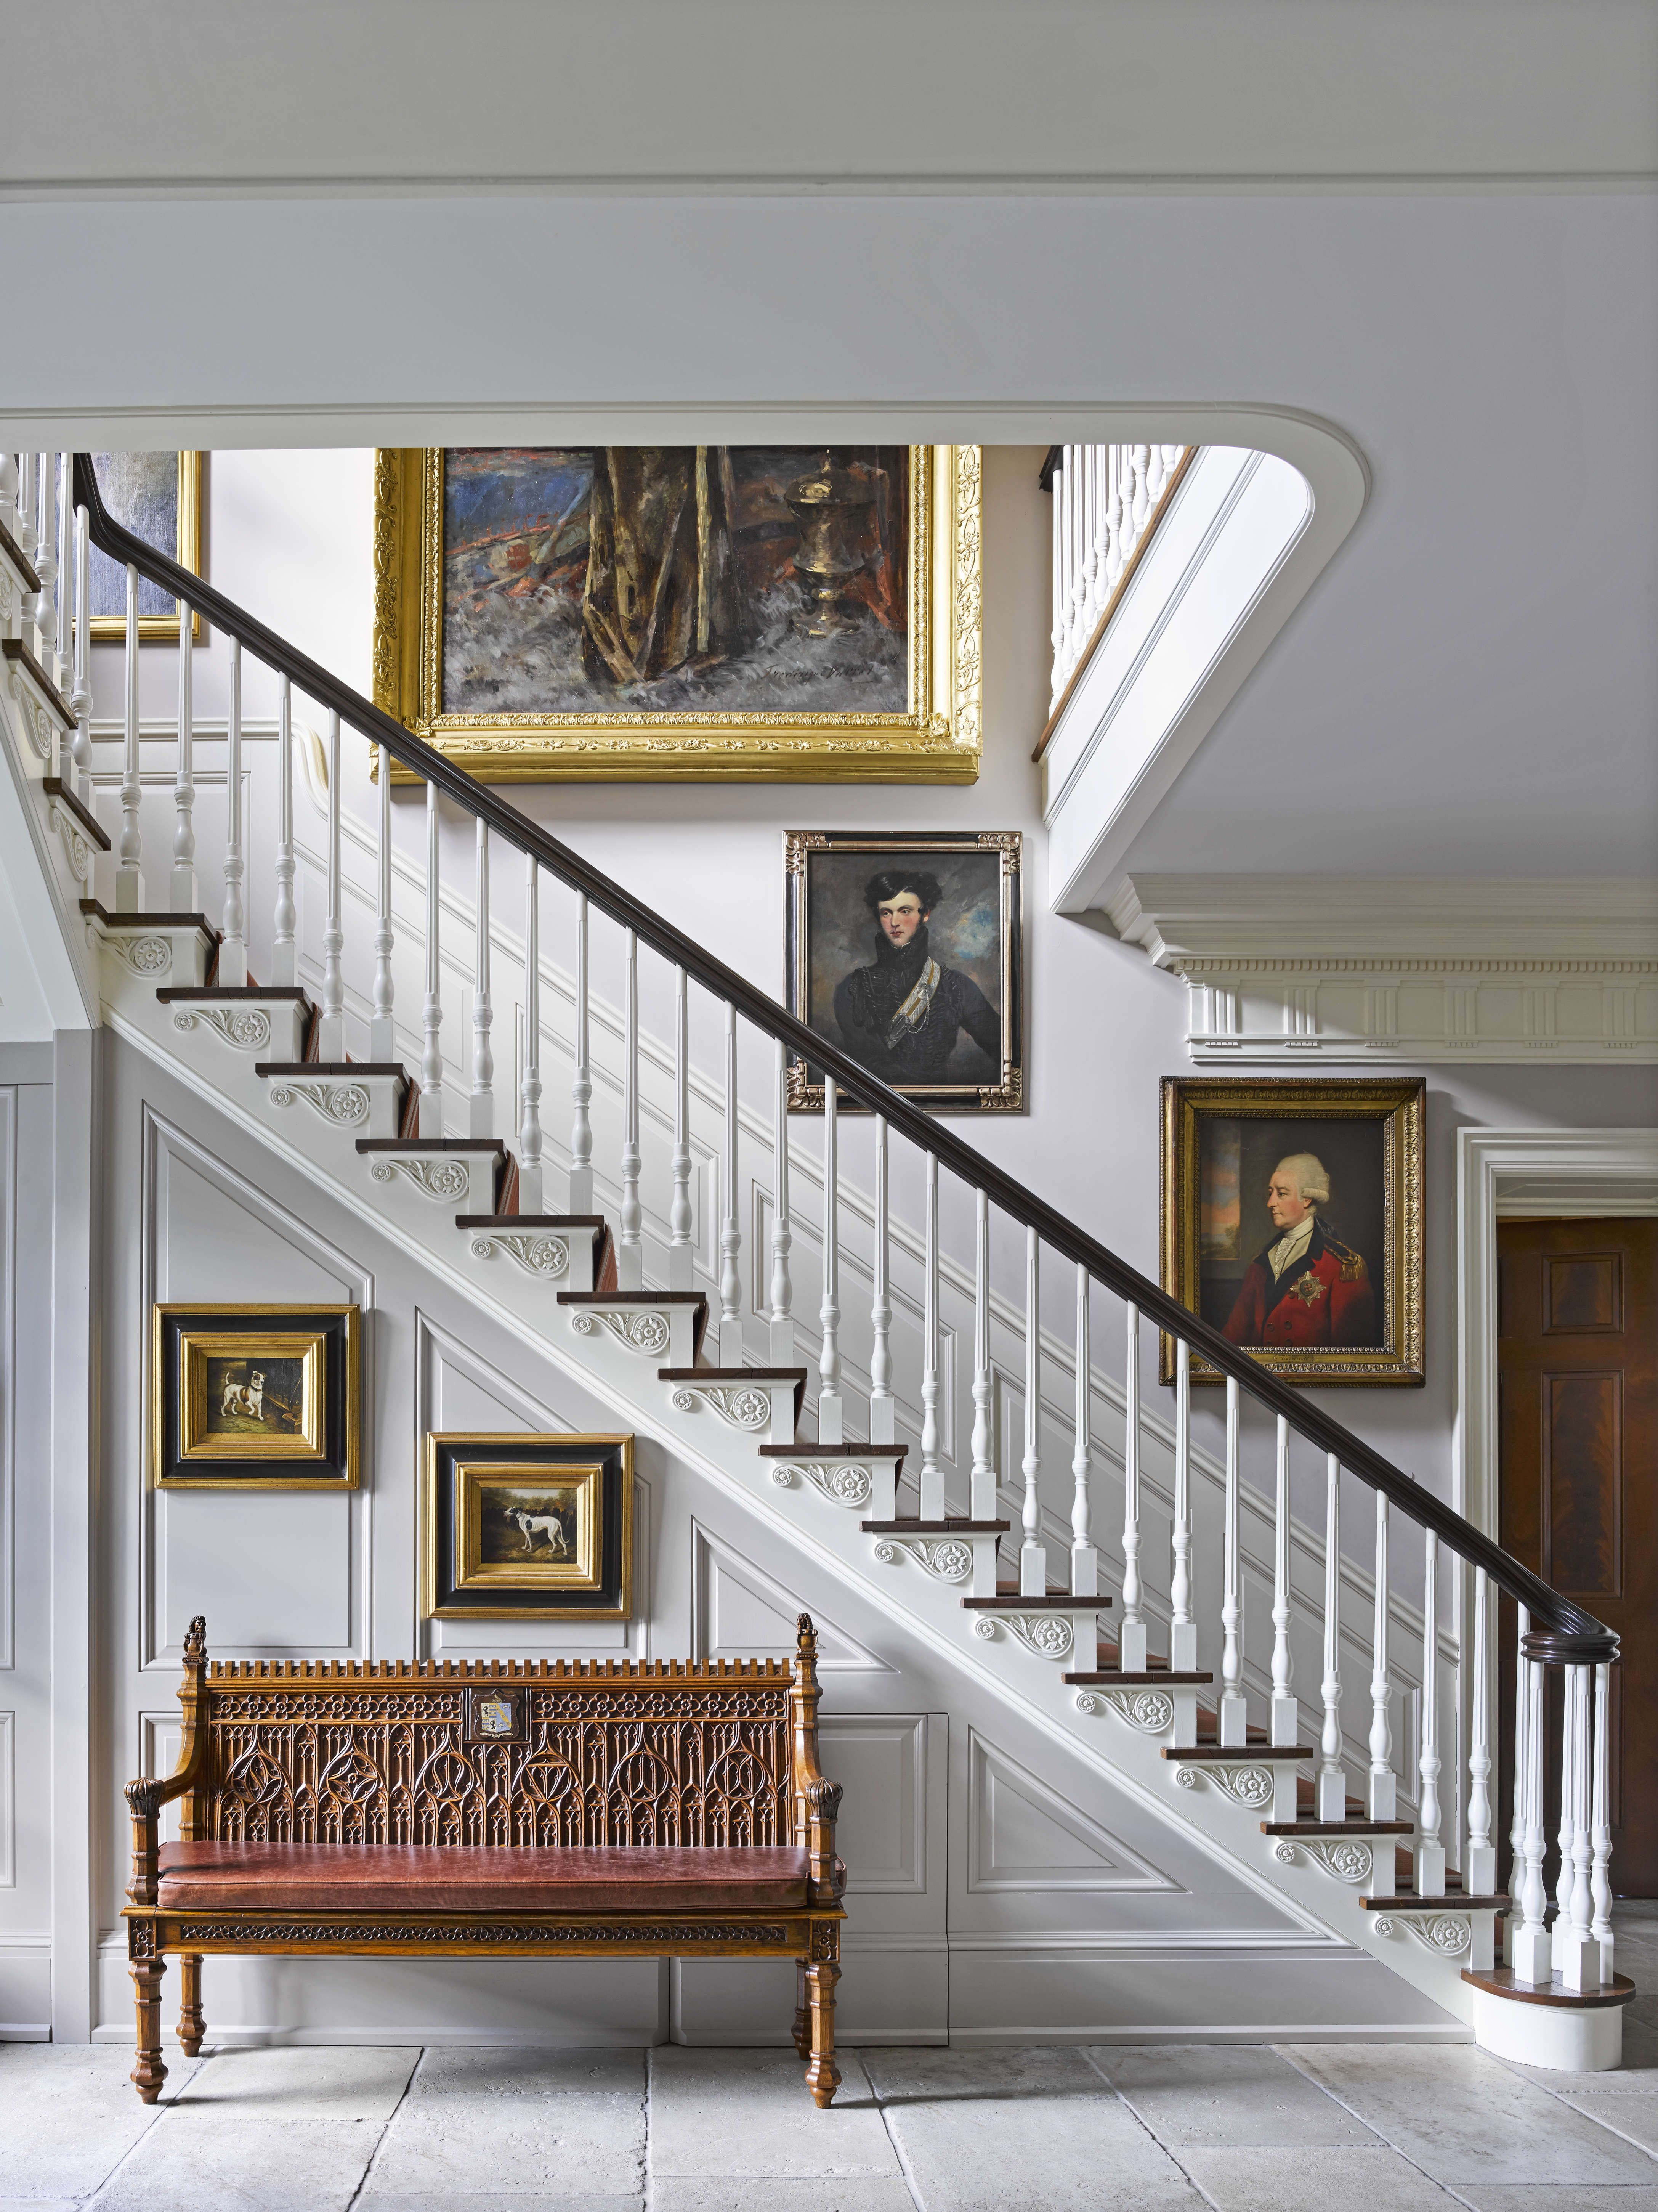 25 Stunning Staircases Ideas - Gorgeous Staircase Home Designs